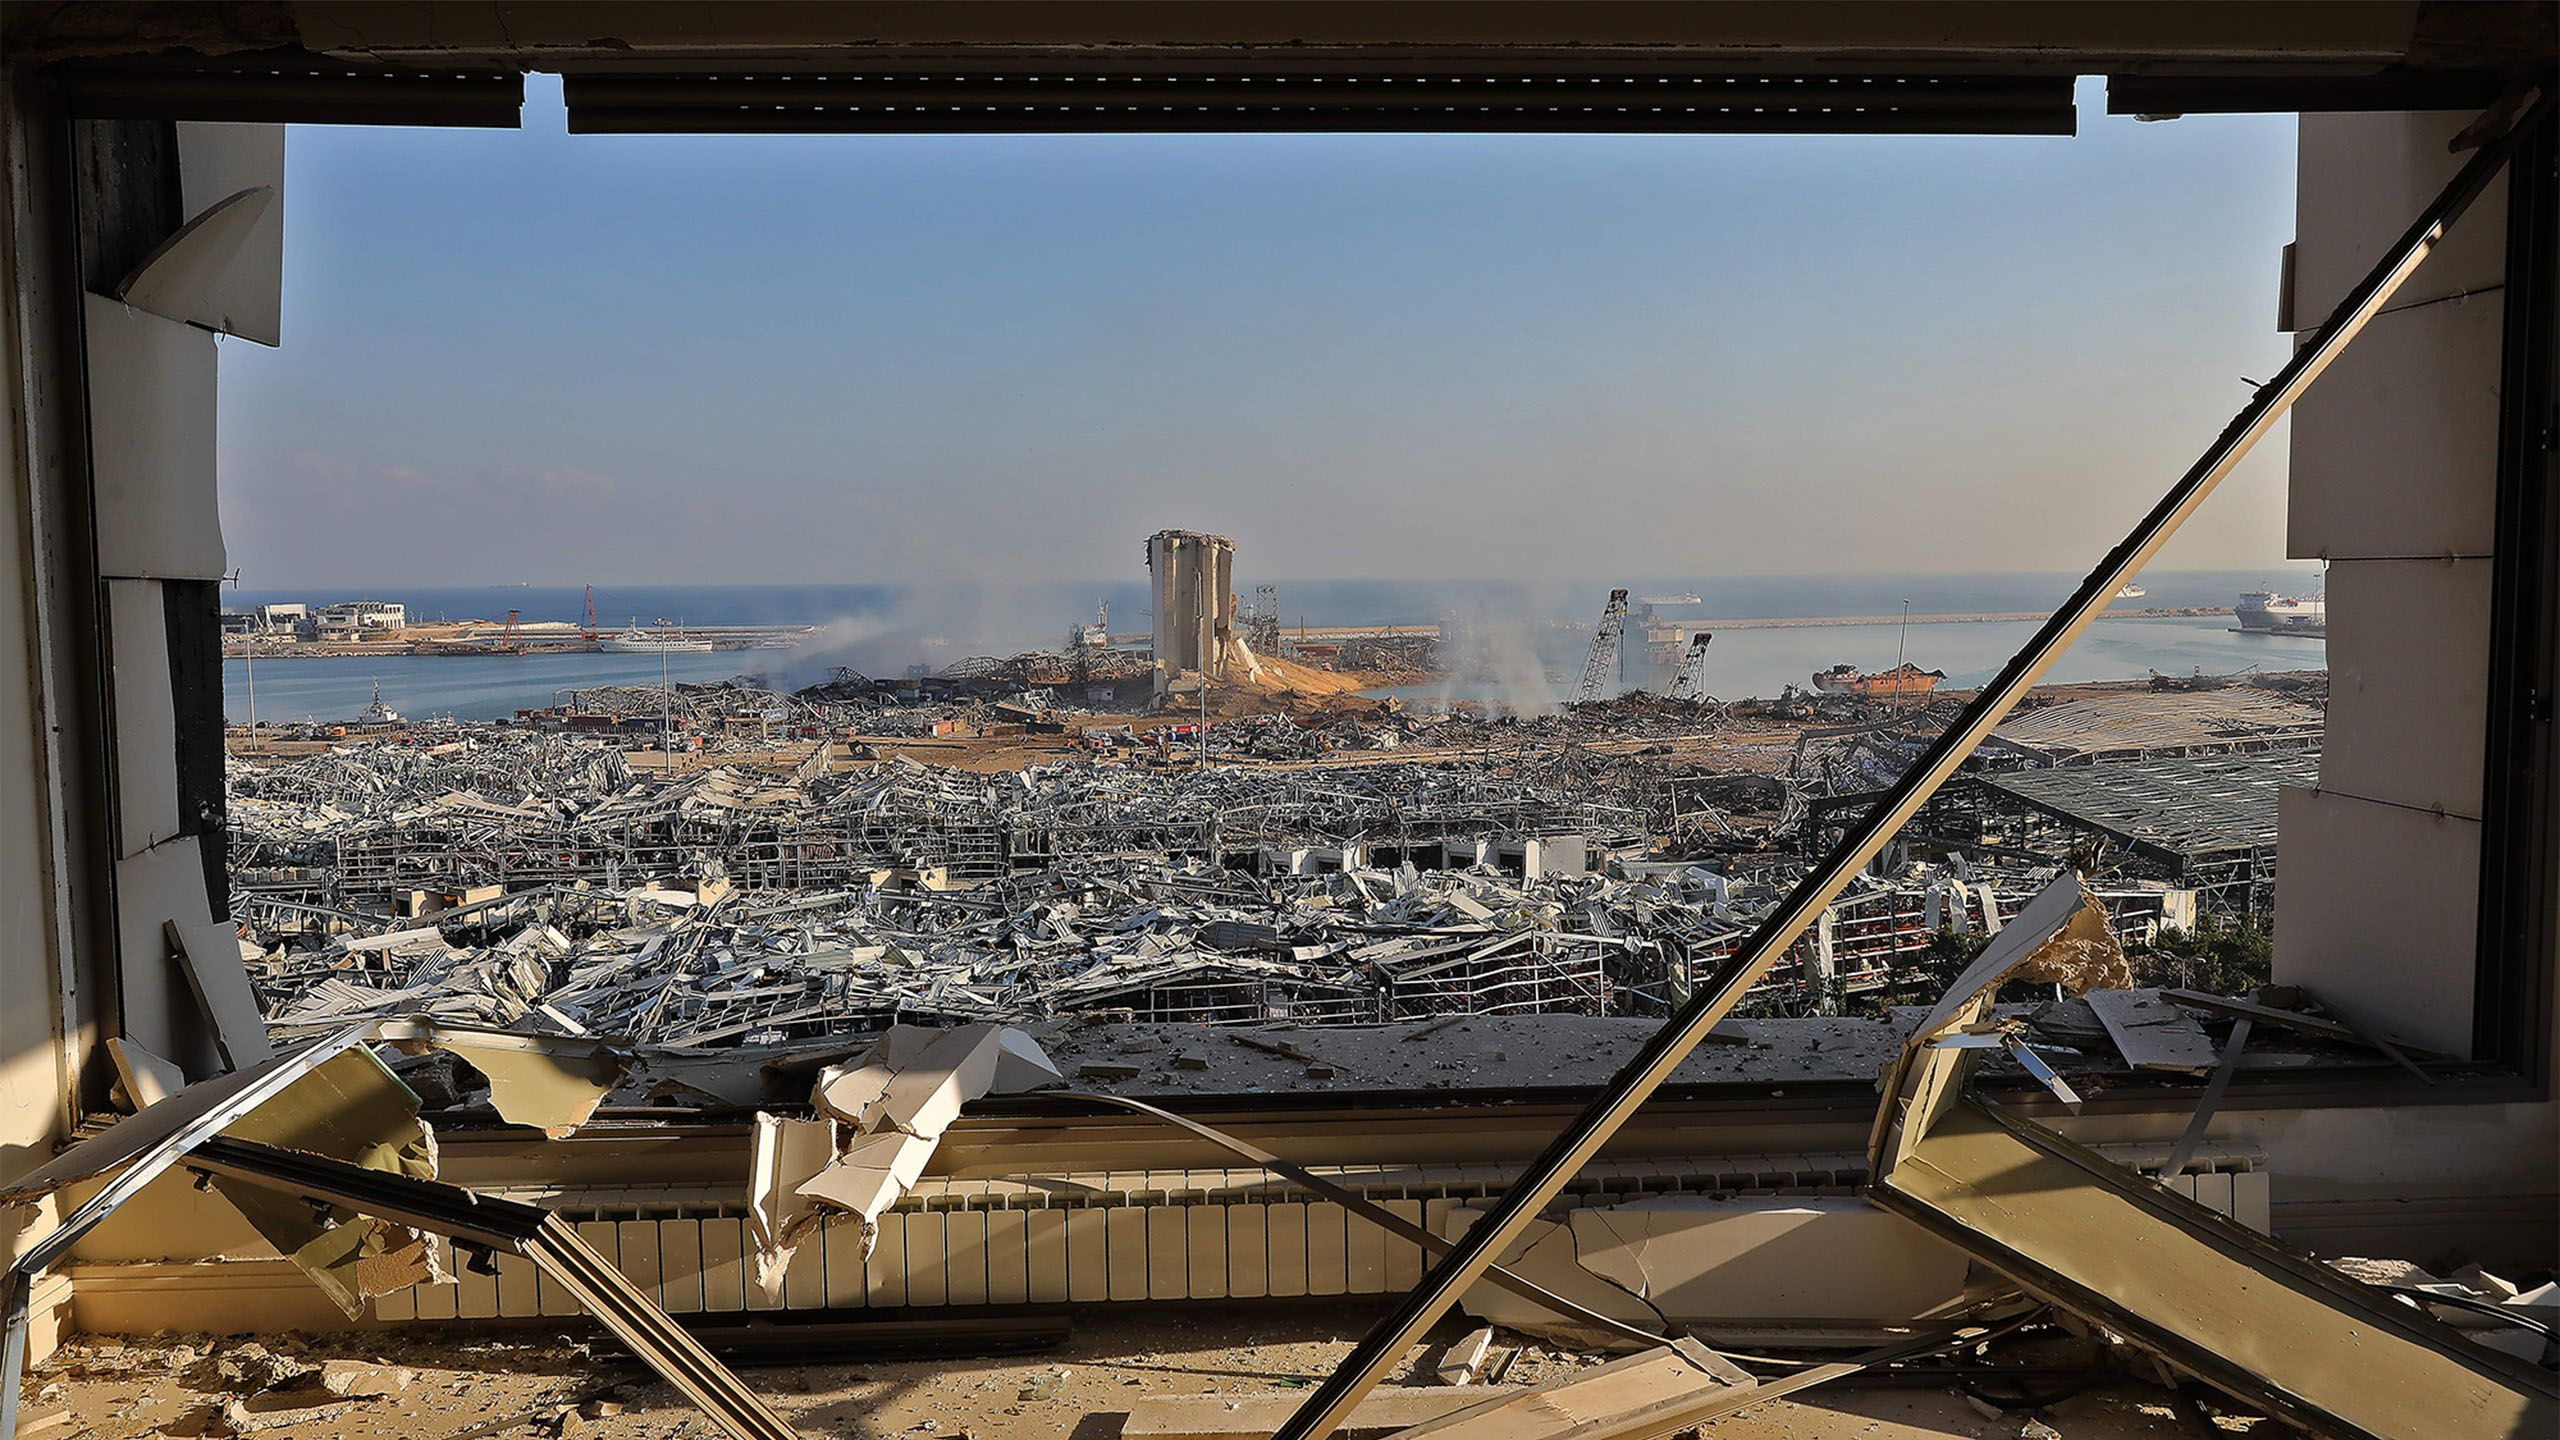 The aftermath of blast at the port of Lebanon's capital Beirut